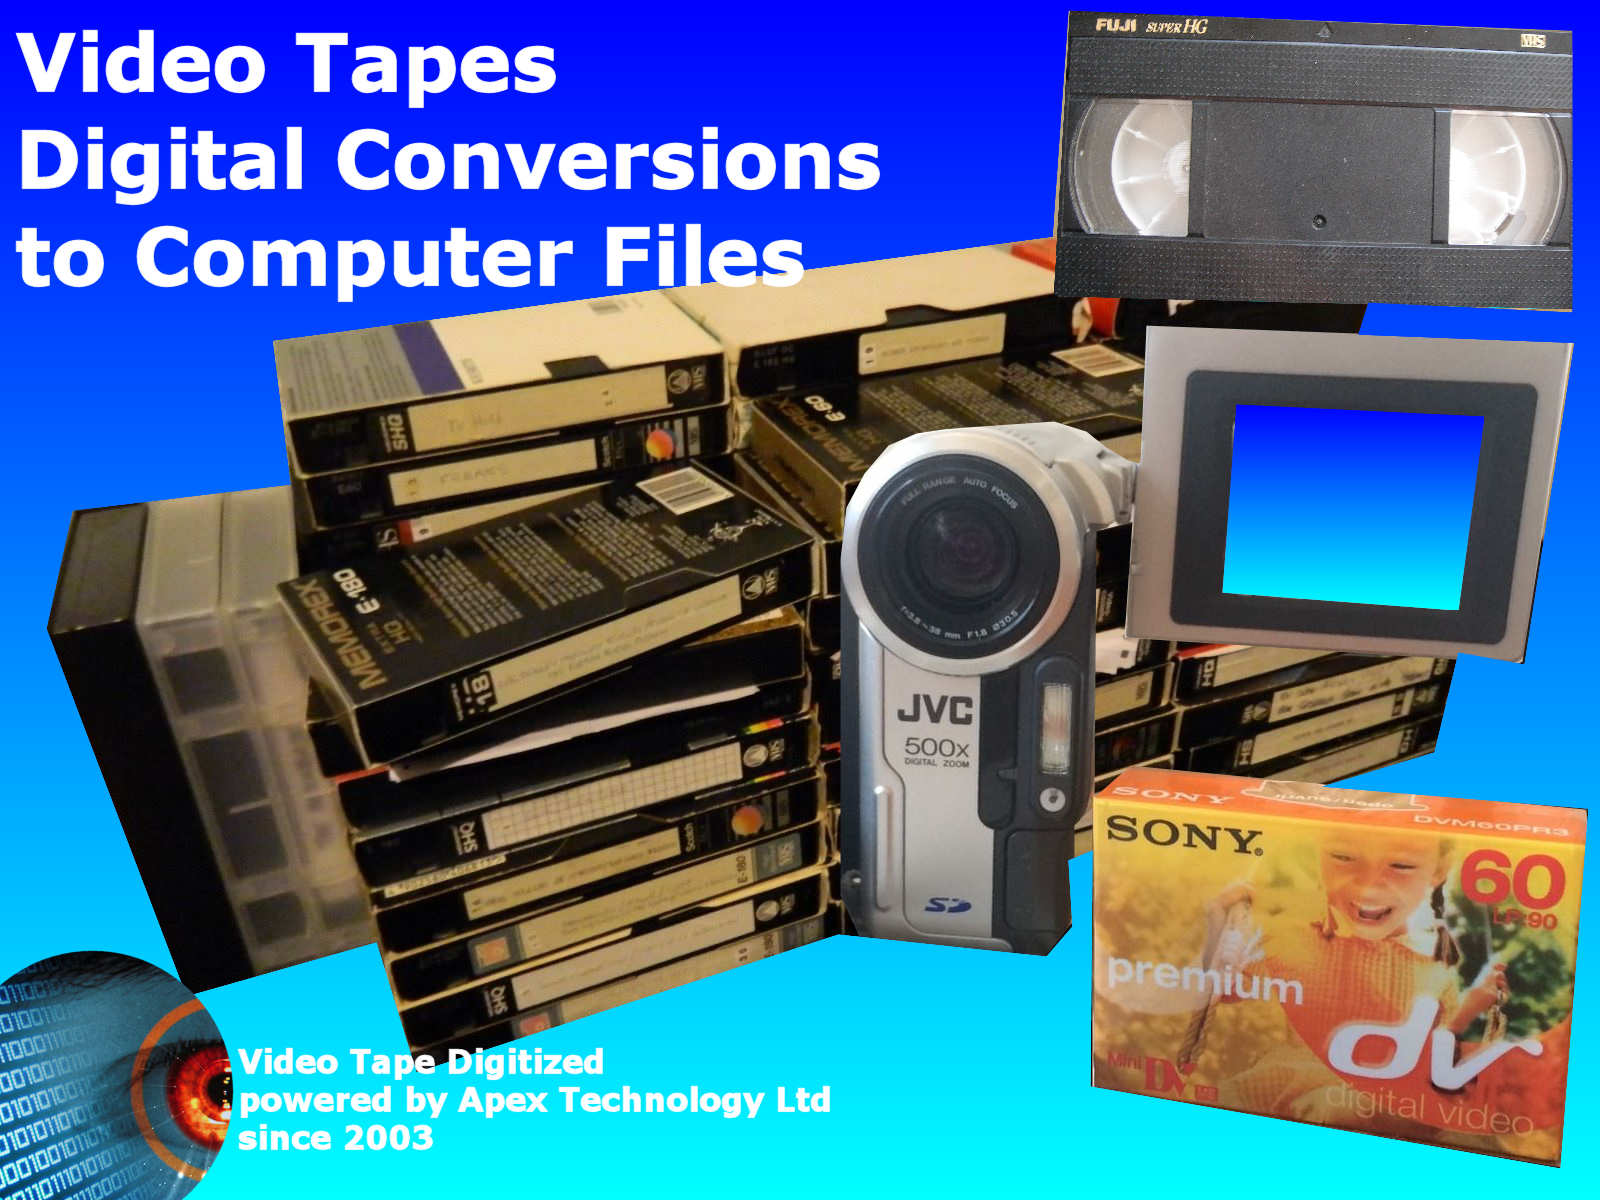 Video Tape Transfer to Digital Formats